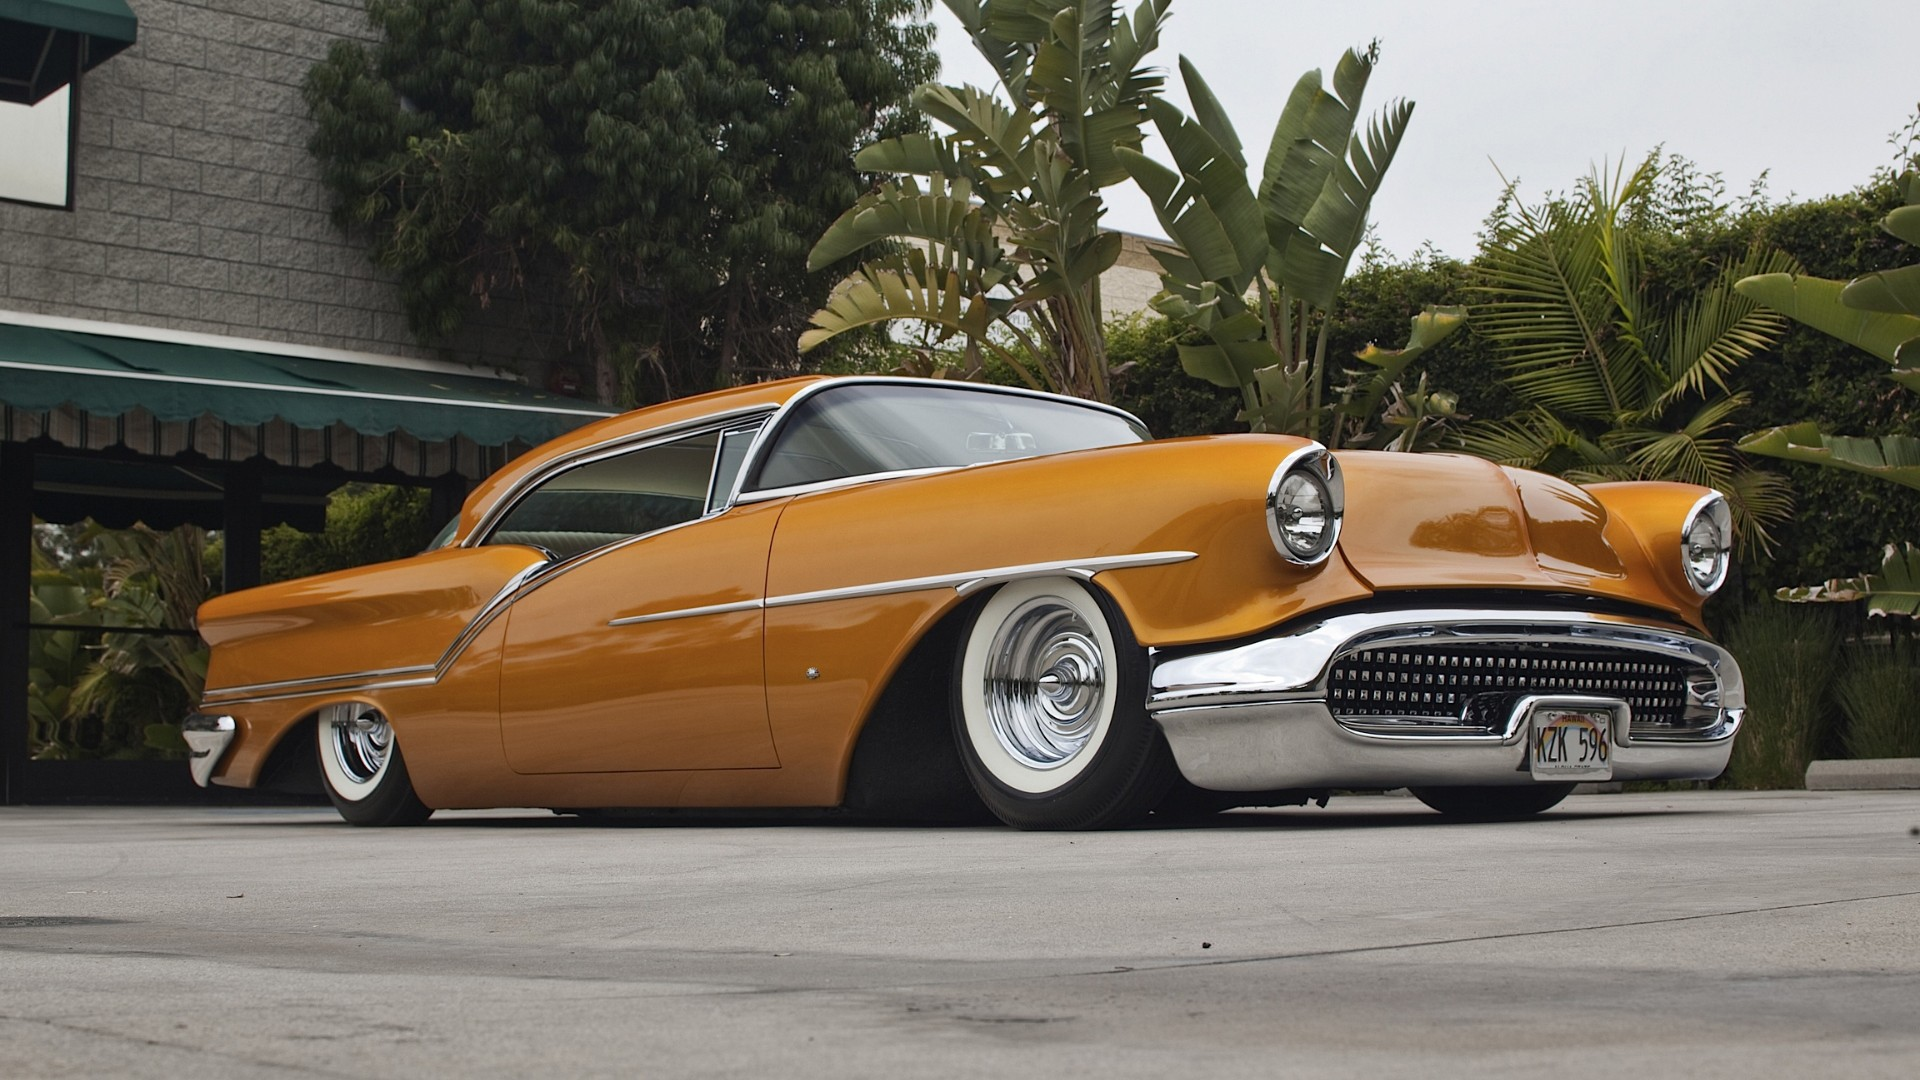 Really Cool Muscle Cars together with 1 also Starandstrand   dawnhull additionally Cadillac Lowrider additionally 1956 Volvo Custom Vizualtech retro lowrider lowriders hot rod rods roadster f. on old but cool cars low riders